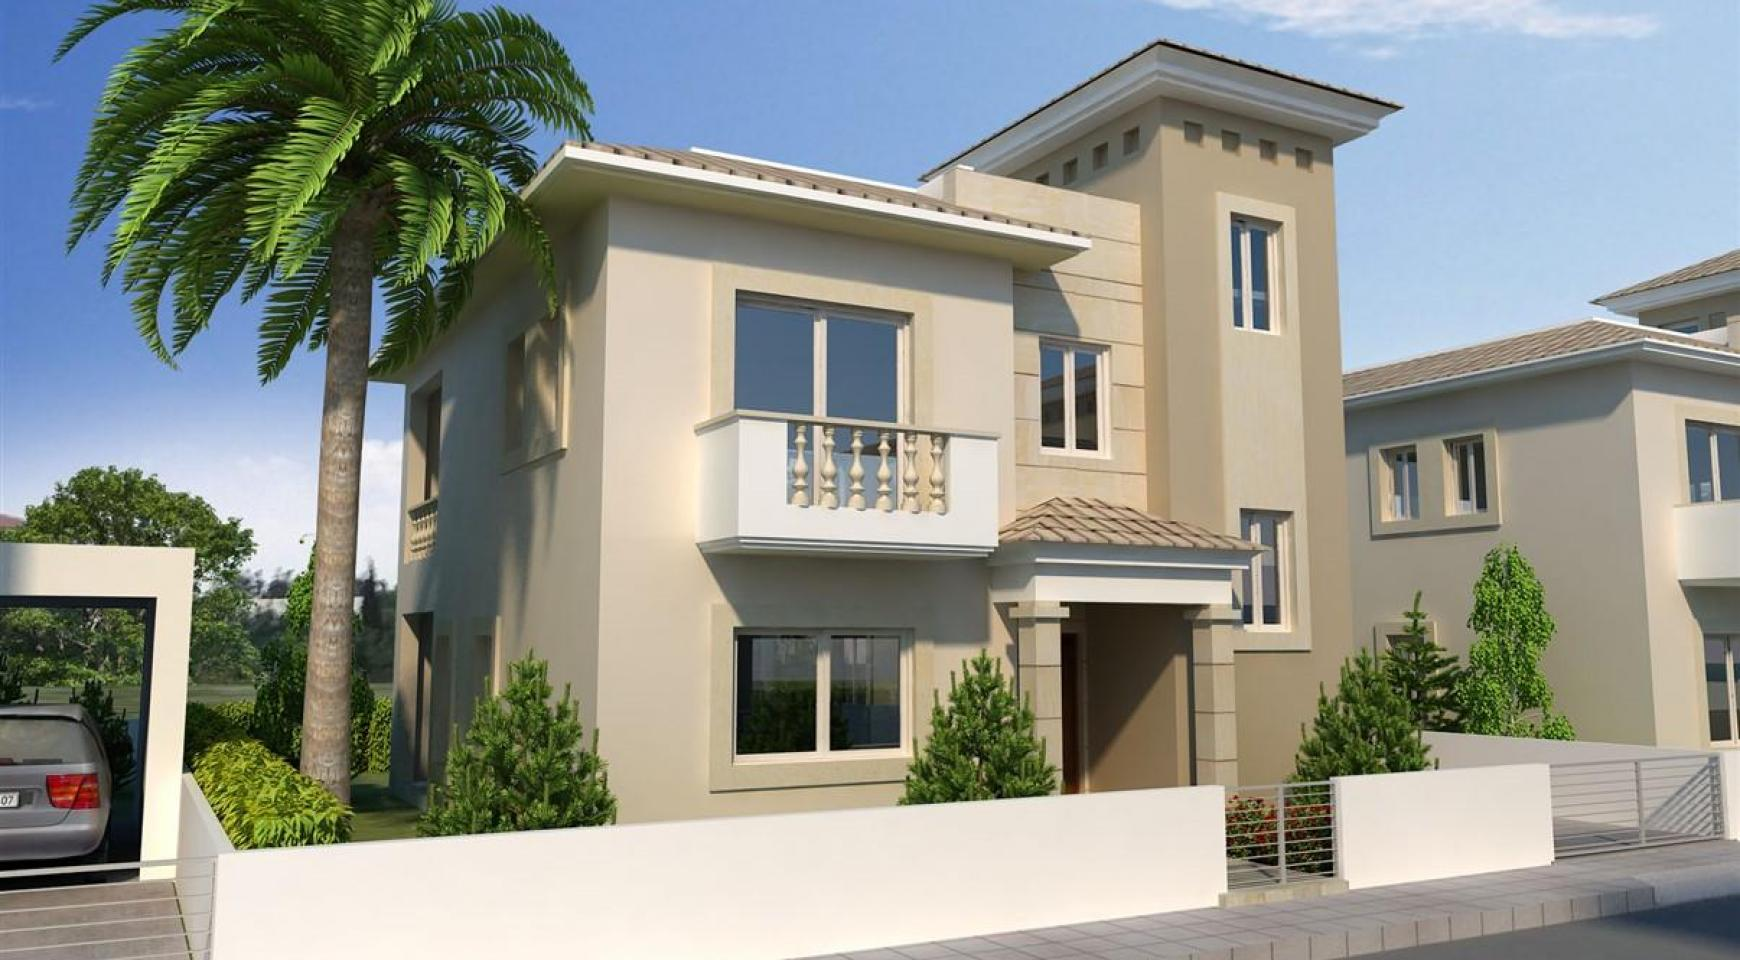 3 Bedroom Villa in New Project in Paphos - 17